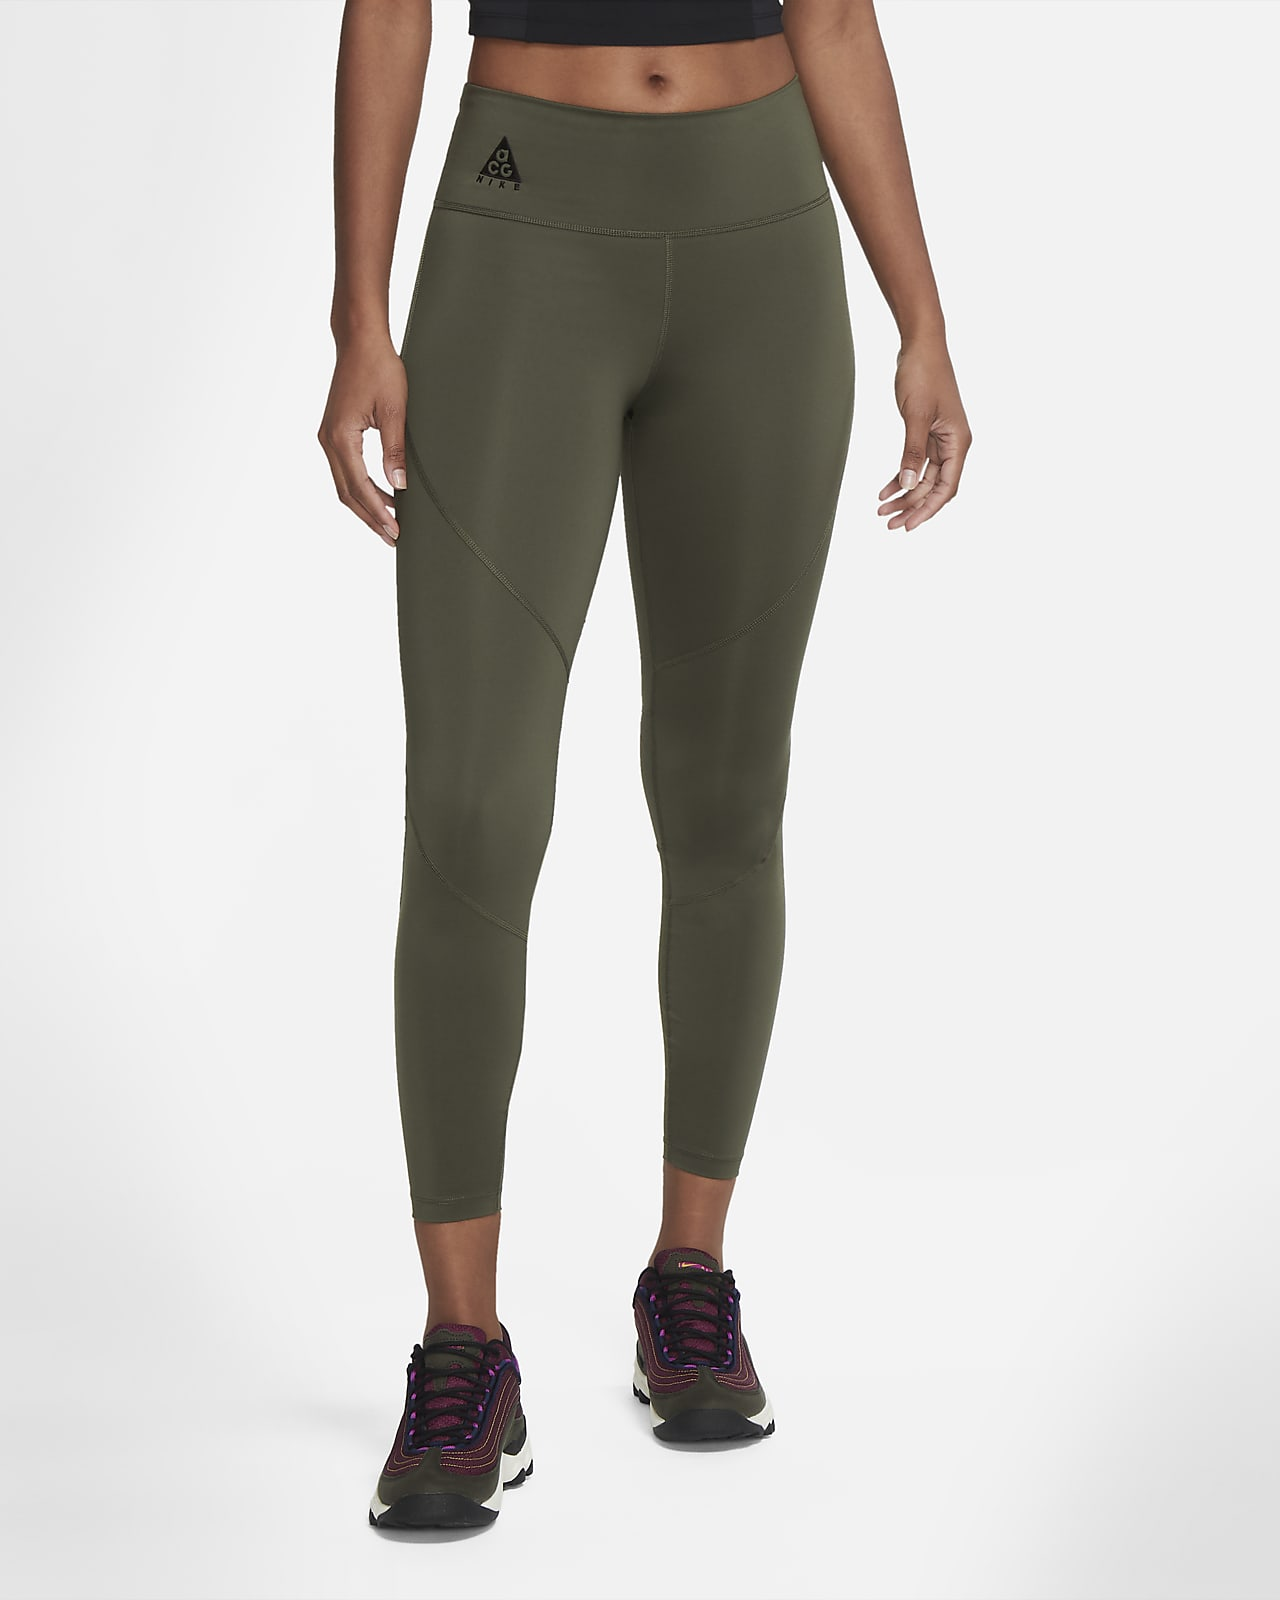 Nike ACG Women's Solid Tights